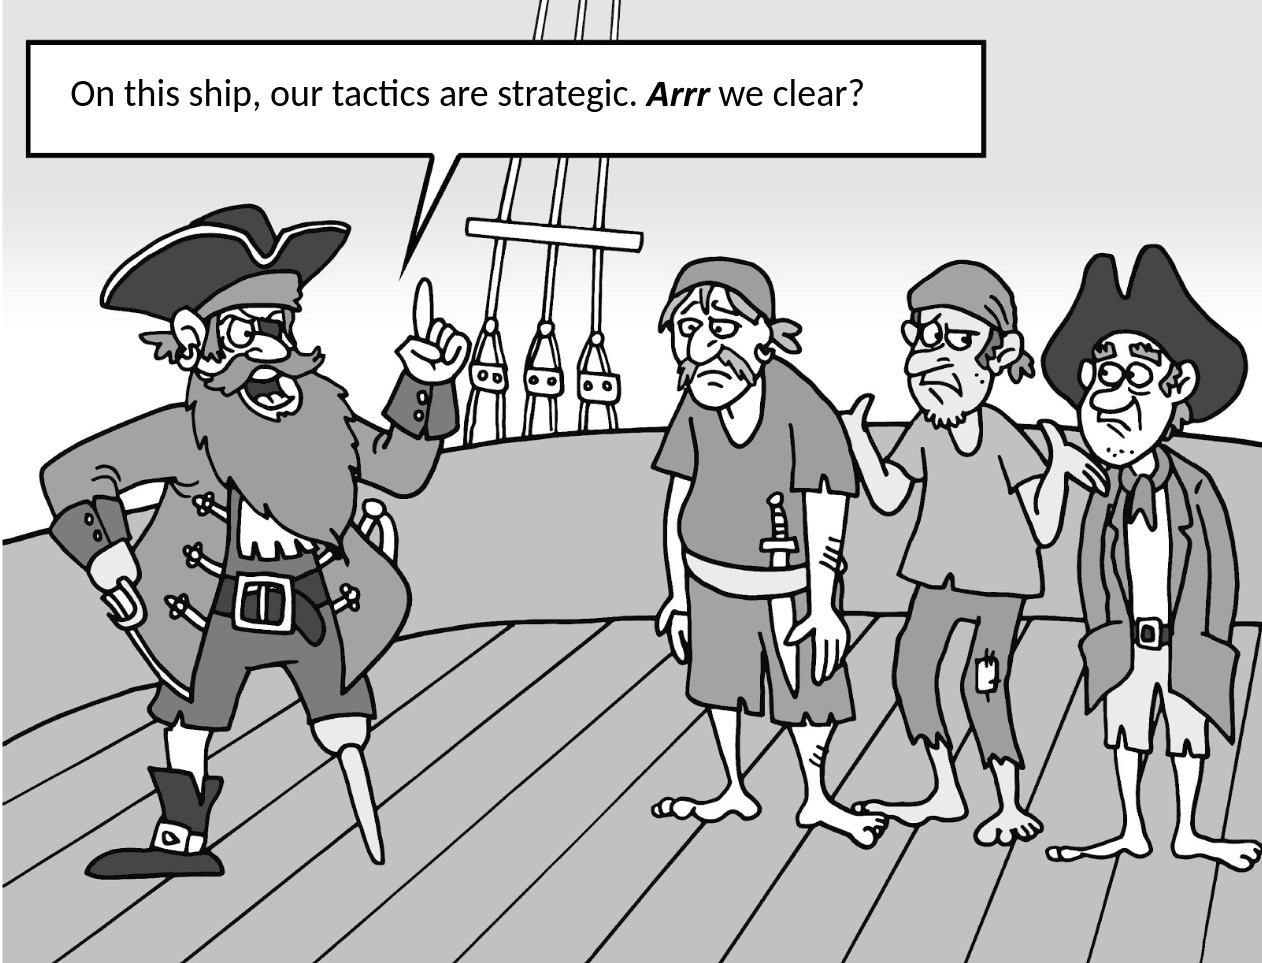 A Pirate's take on Strategy vs Tactics